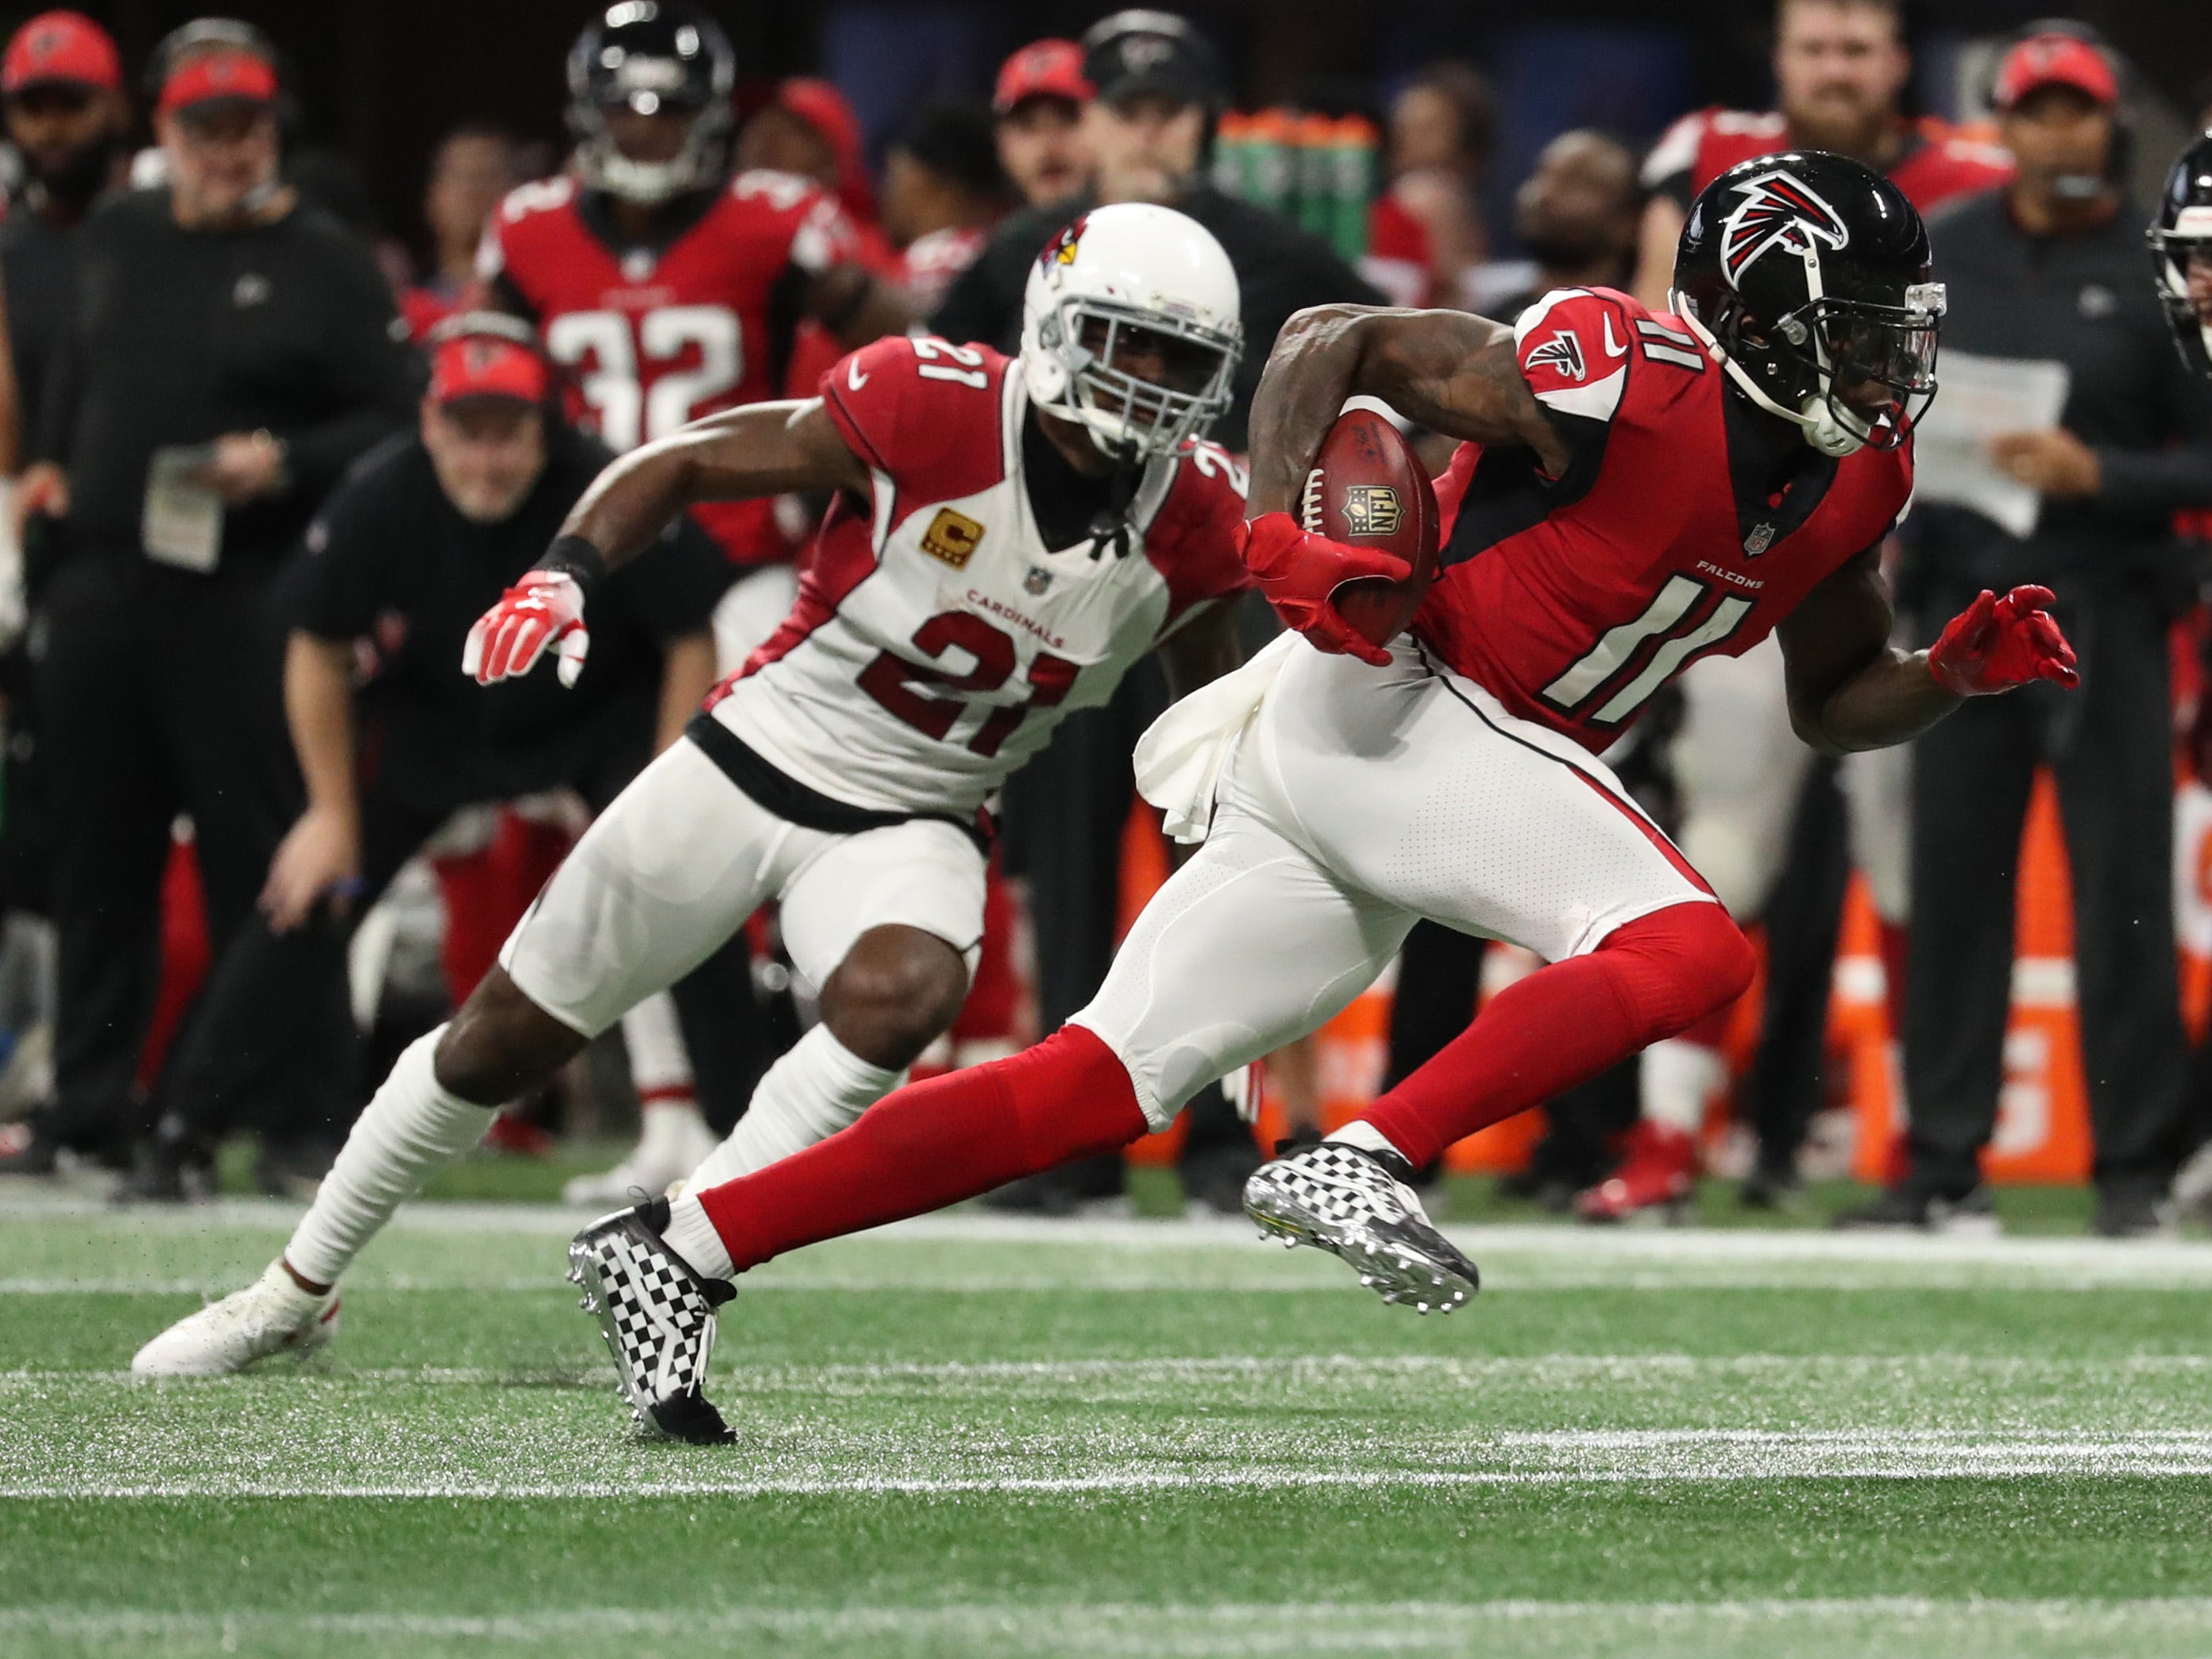 Dec 16, 2018; Atlanta, GA, USA; Atlanta Falcons wide receiver Julio Jones (11) runs after a catch against Arizona Cardinals cornerback Patrick Peterson (21) in the second quarter at Mercedes-Benz Stadium.